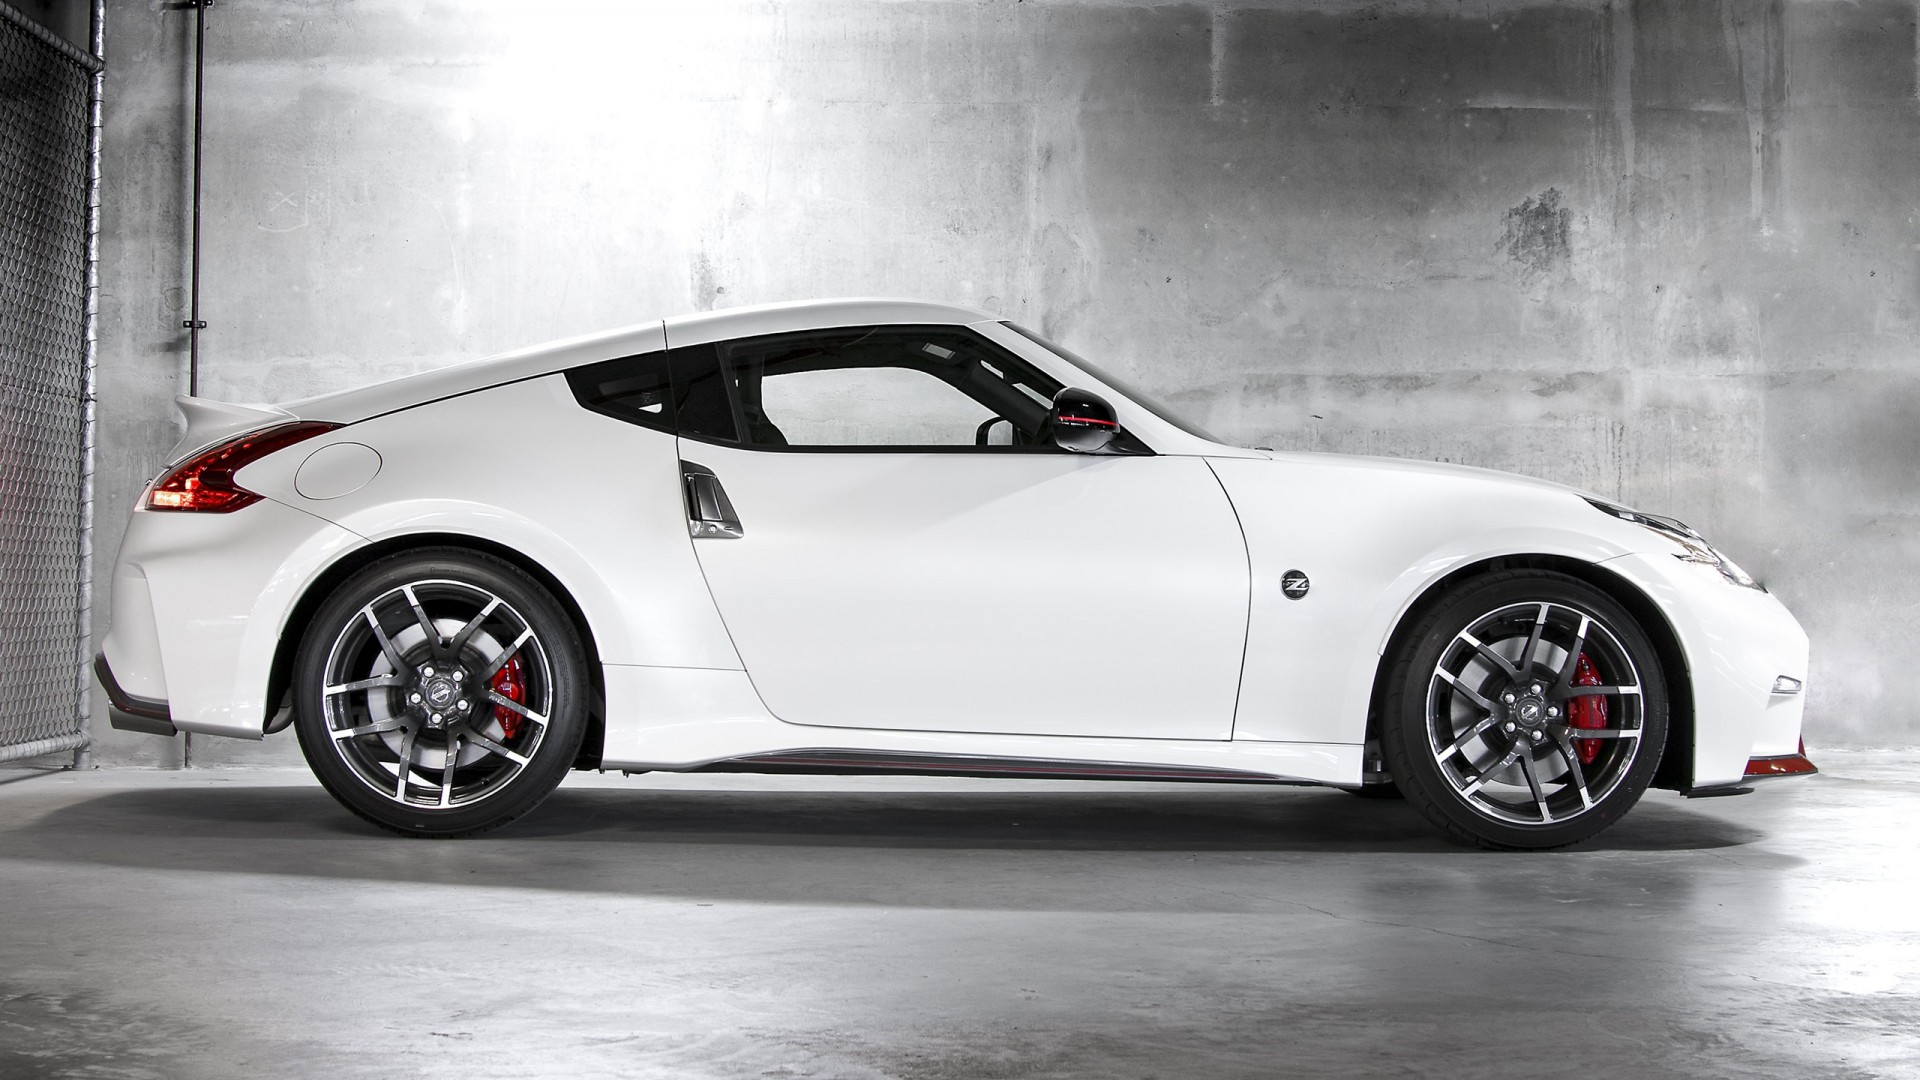 2018 Nissan 370Z Nismo 2 Wallpaper | HD Car Wallpapers ...